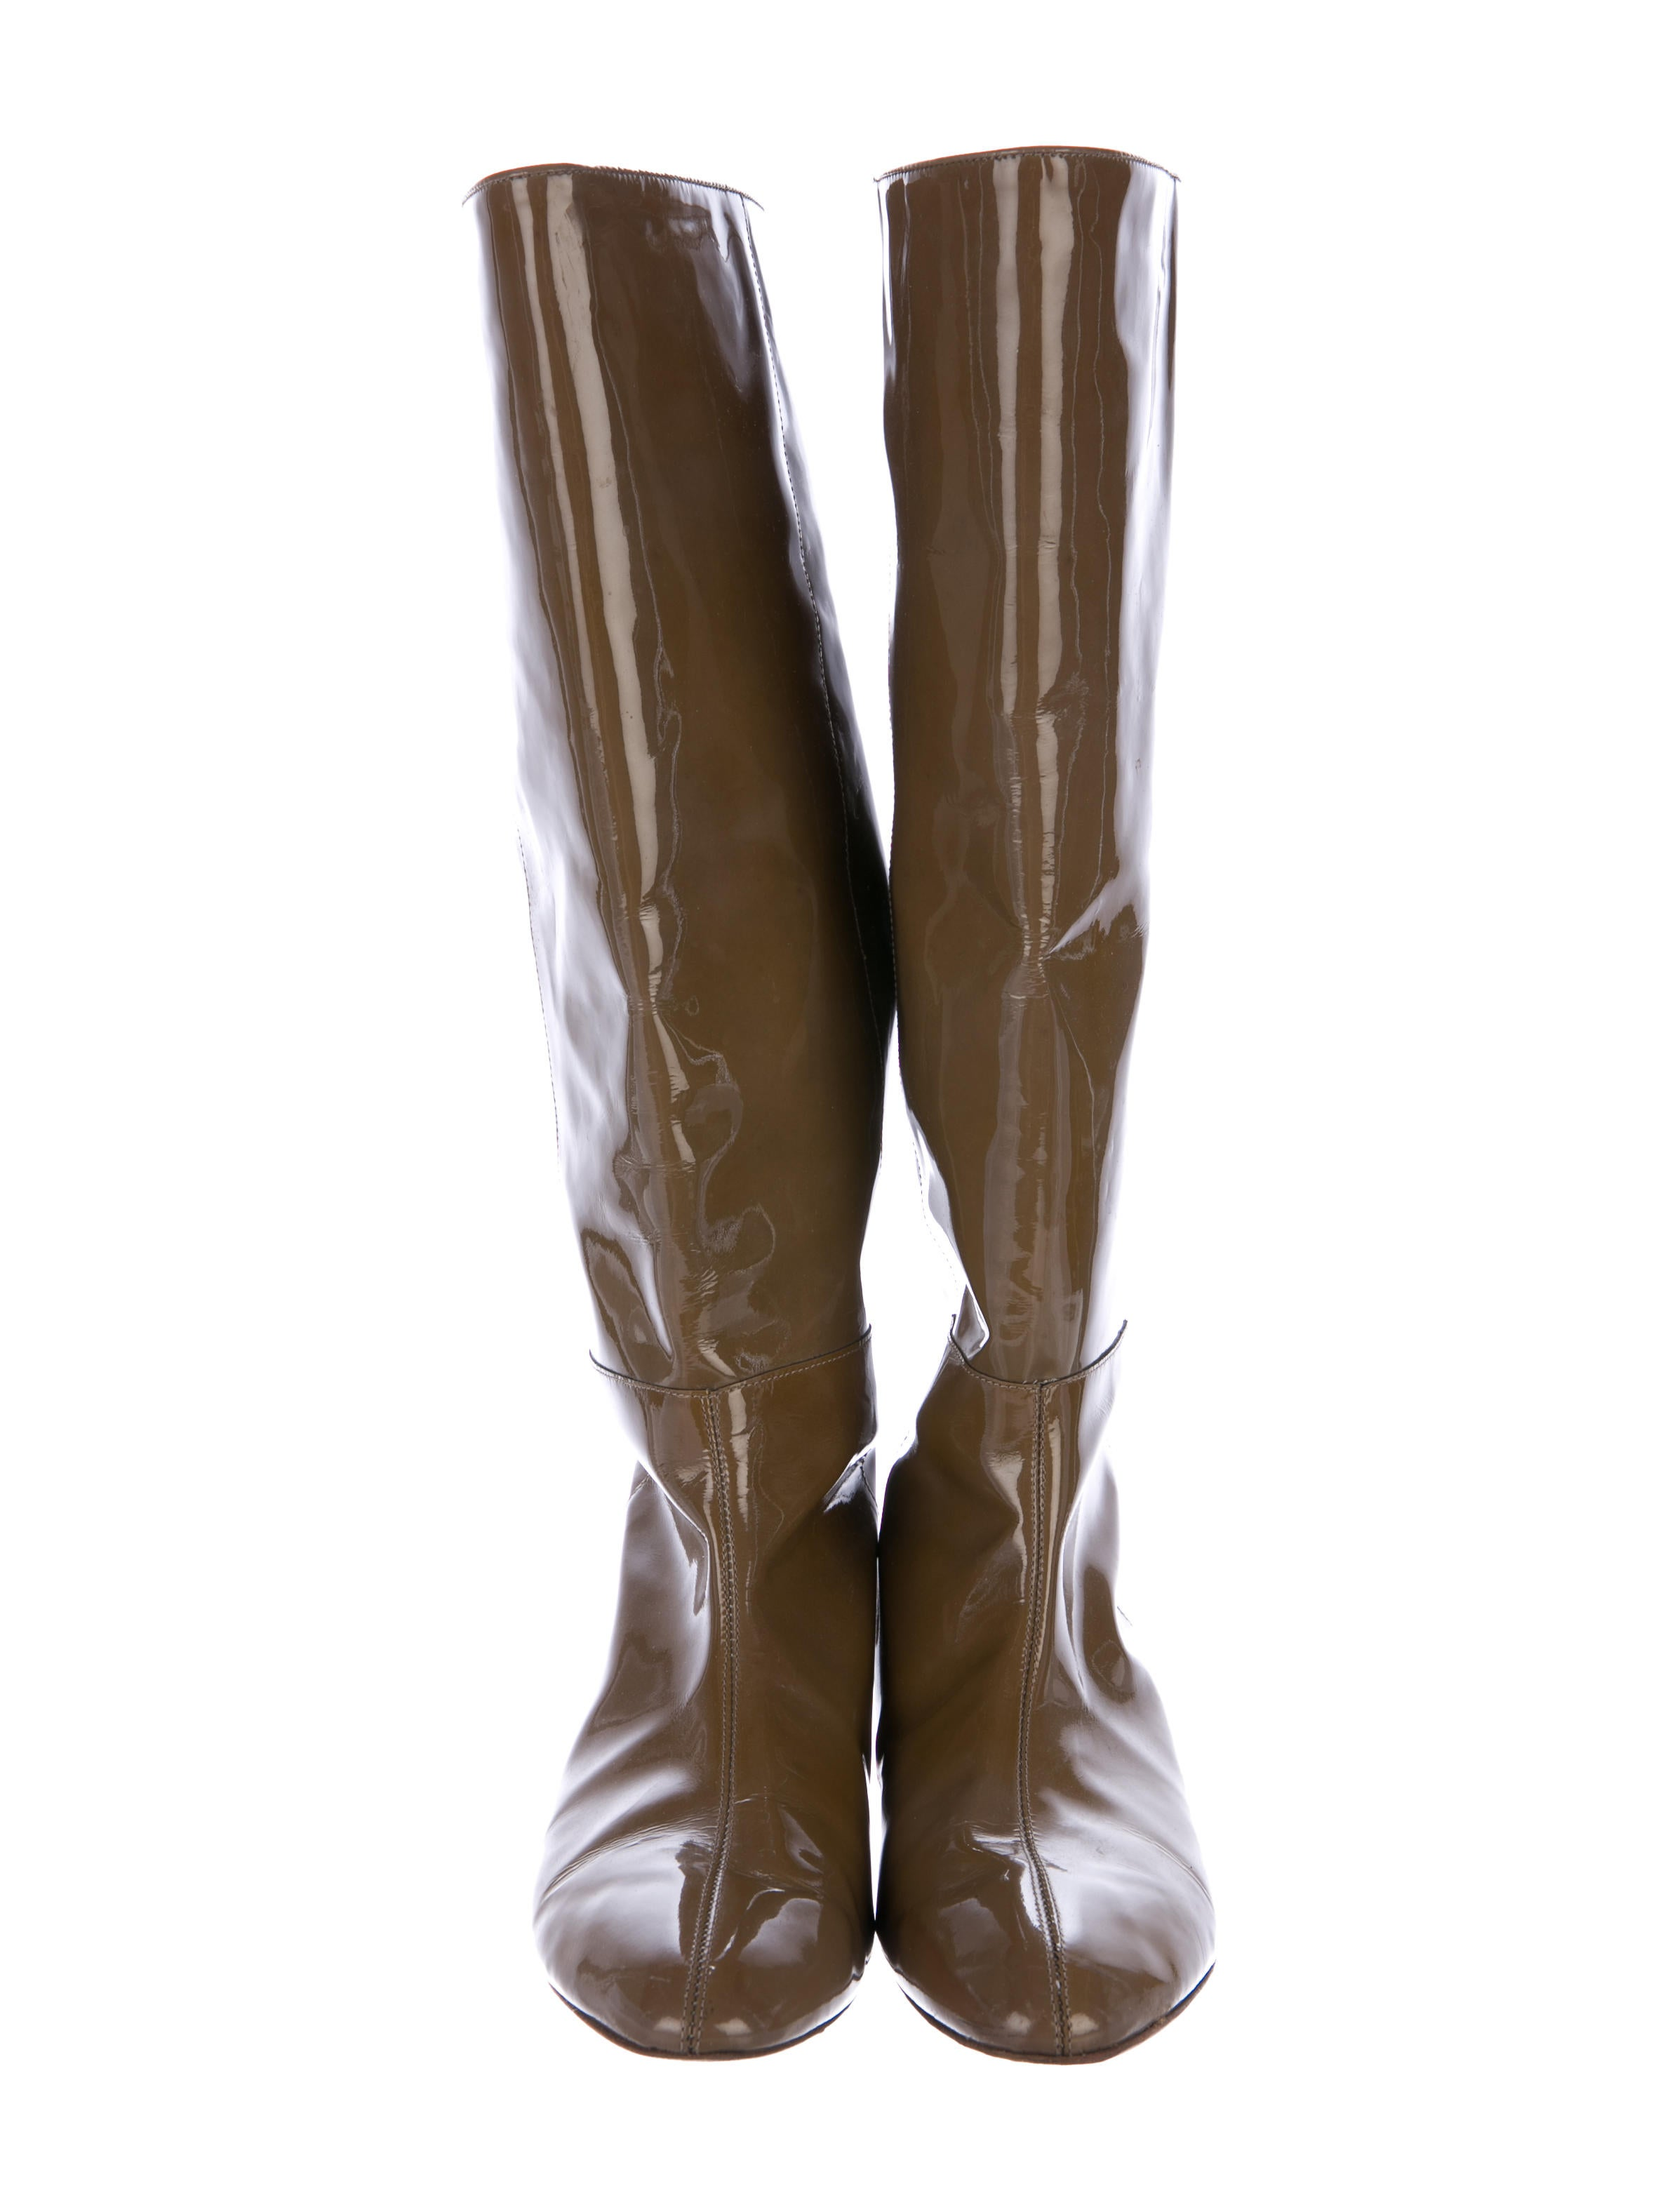 loeffler randall patent leather wedge boots shoes